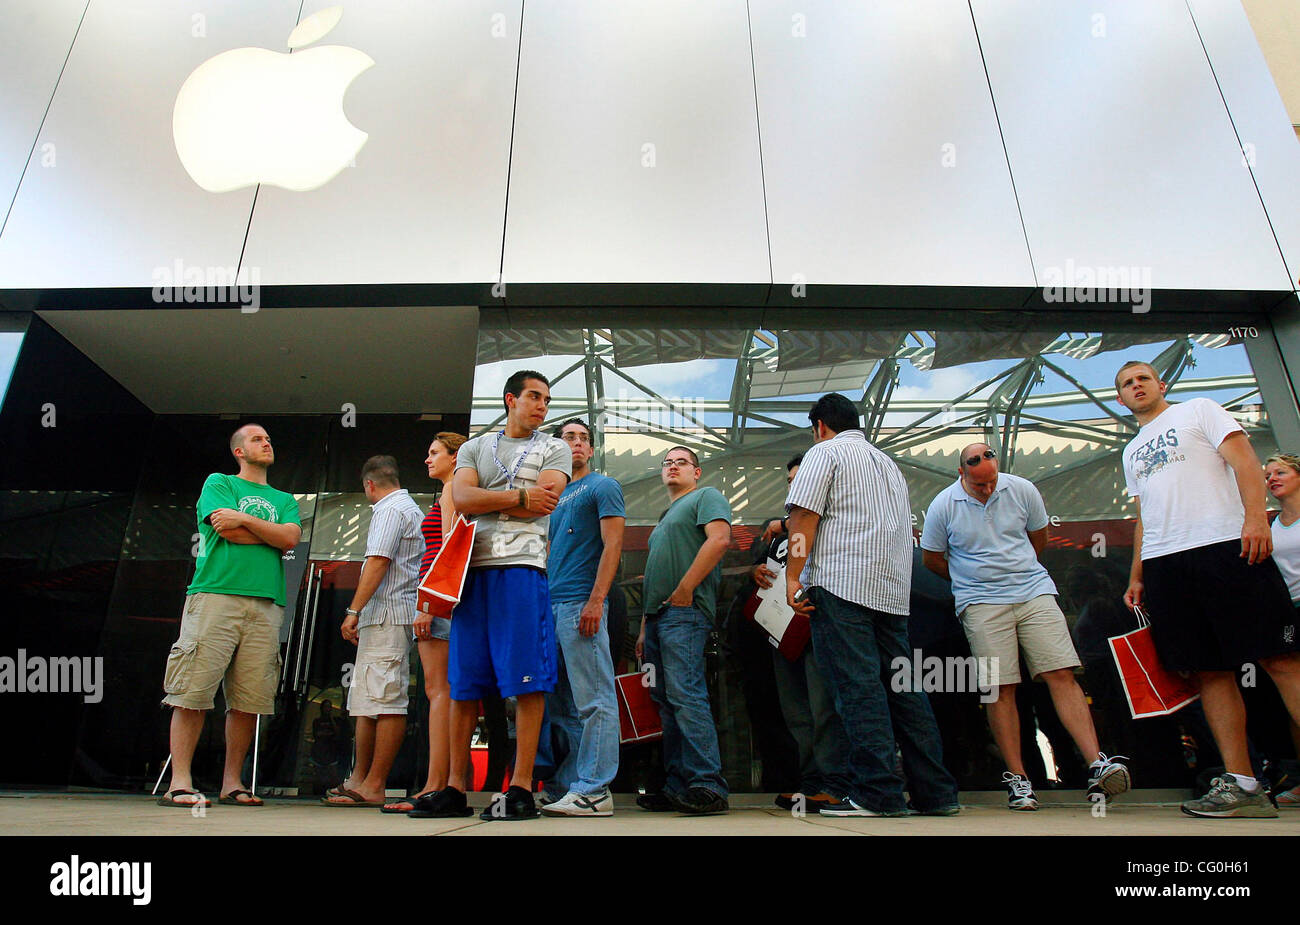 FOR METRO - Customers wait in line to purchase the iPhone, from the La Cantera Apple store, which went on sale at - Stock Image